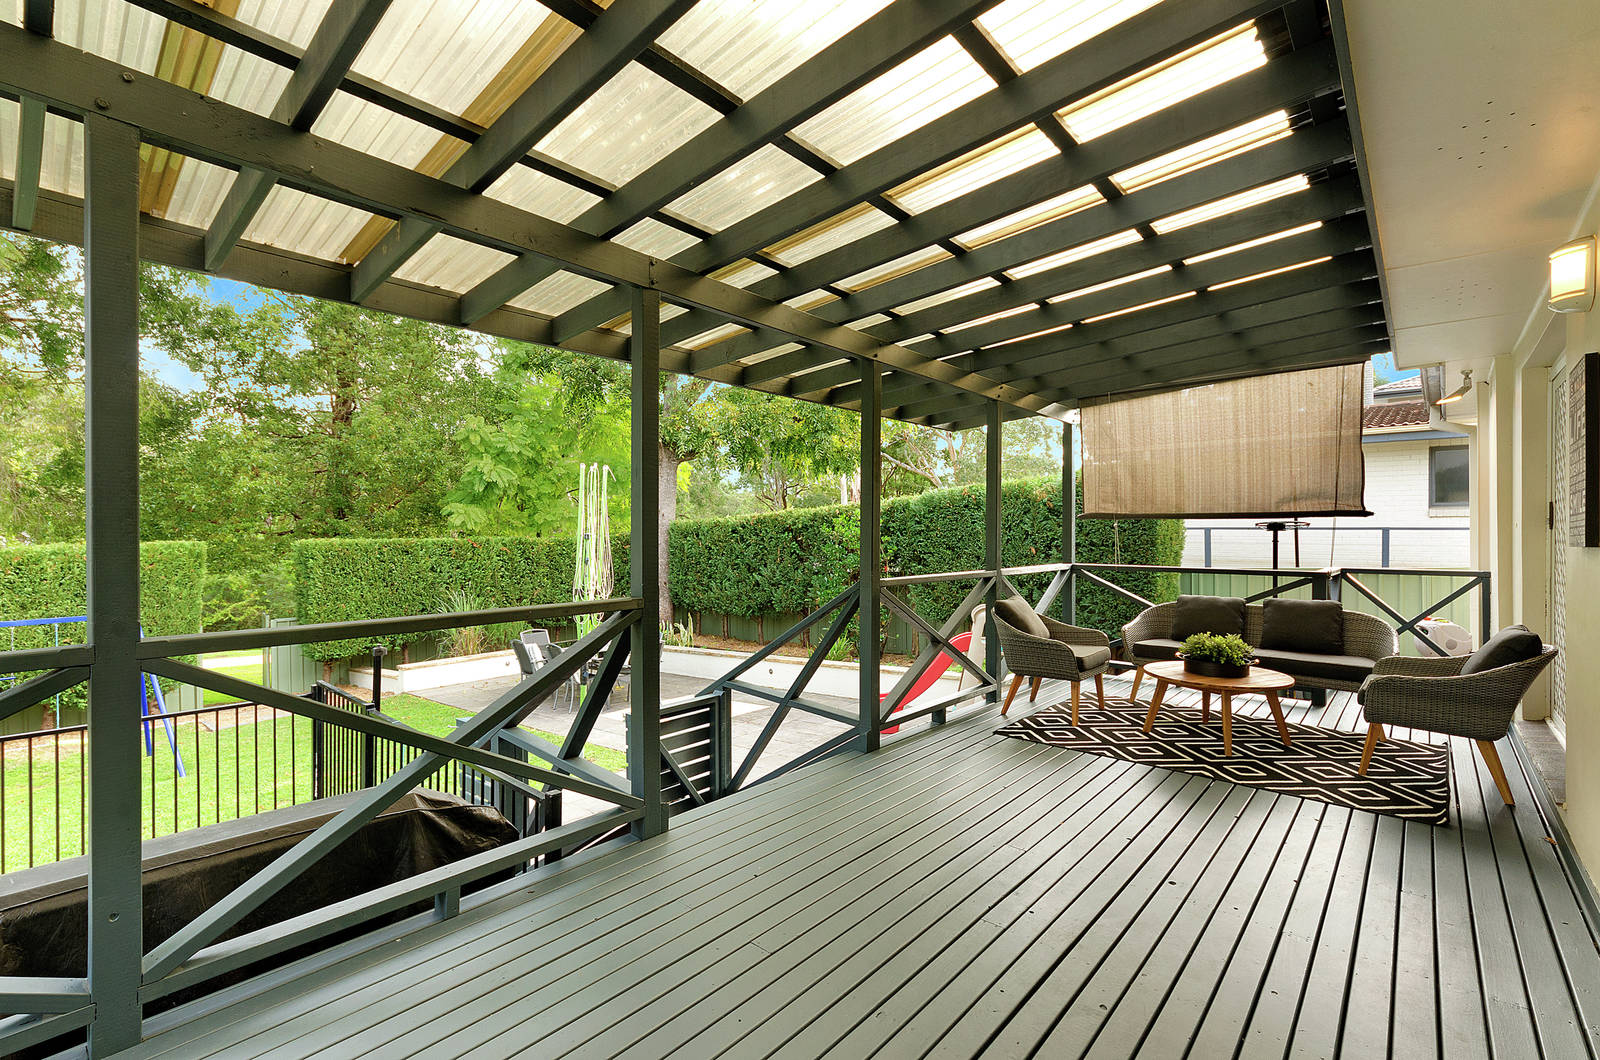 Baulkham Hills Rd Outdoor Living